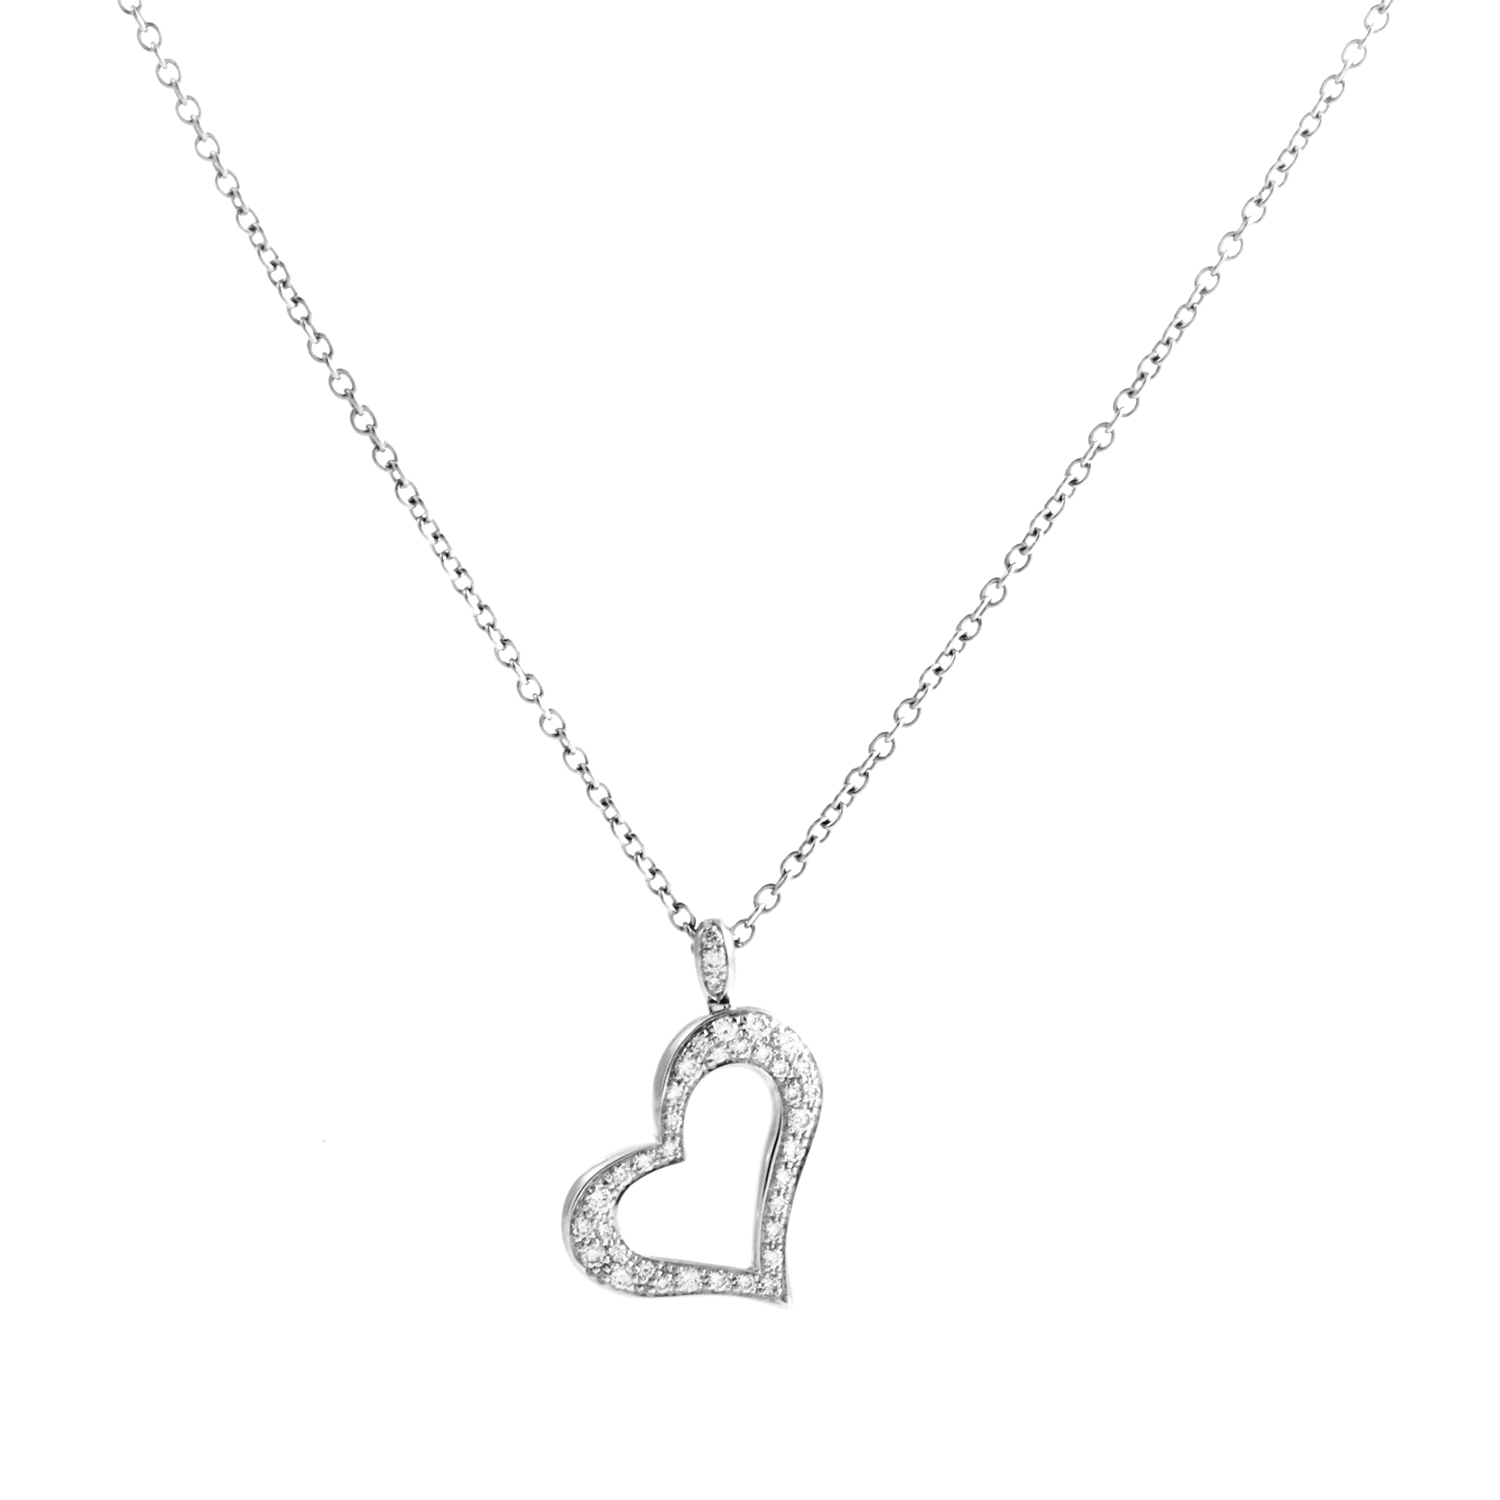 Piaget Women's 18K White Gold Diamond Pave Heart Pendant Necklace